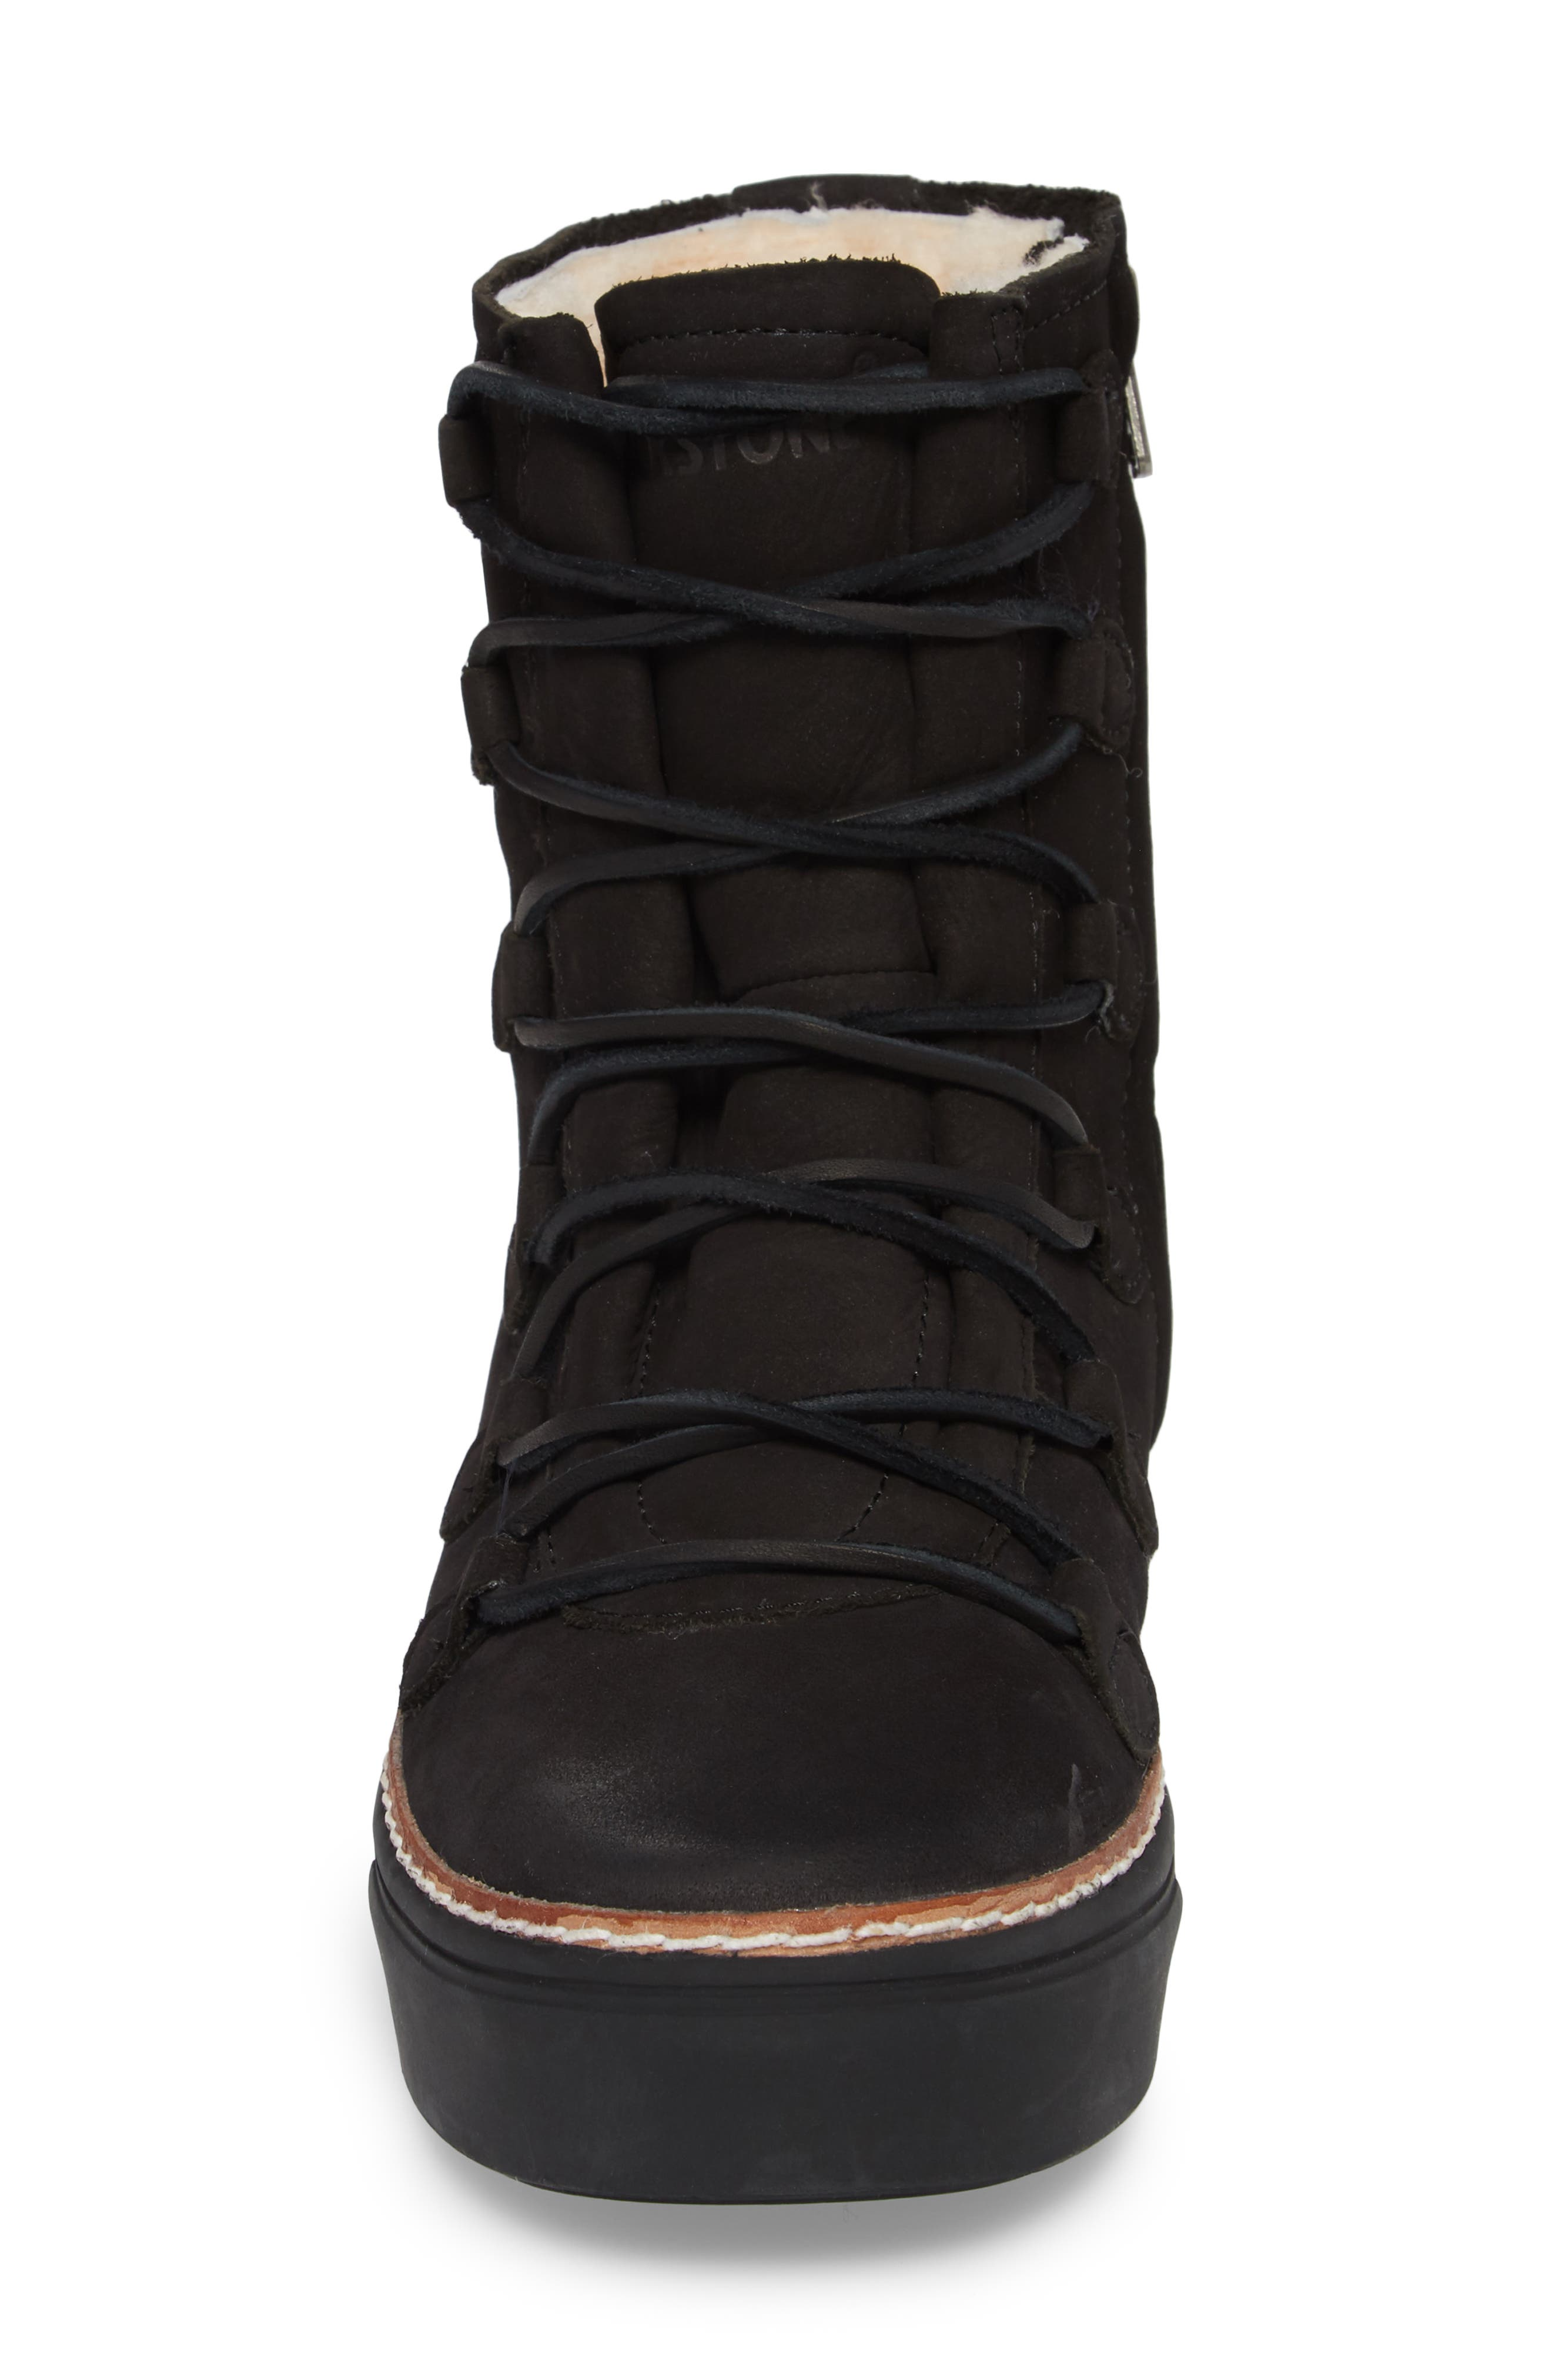 BLACKSTONE,                             OL26 Genuine Shearling Lined Lace-Up Bootie,                             Alternate thumbnail 4, color,                             BLACK NUBUCK LEATHER